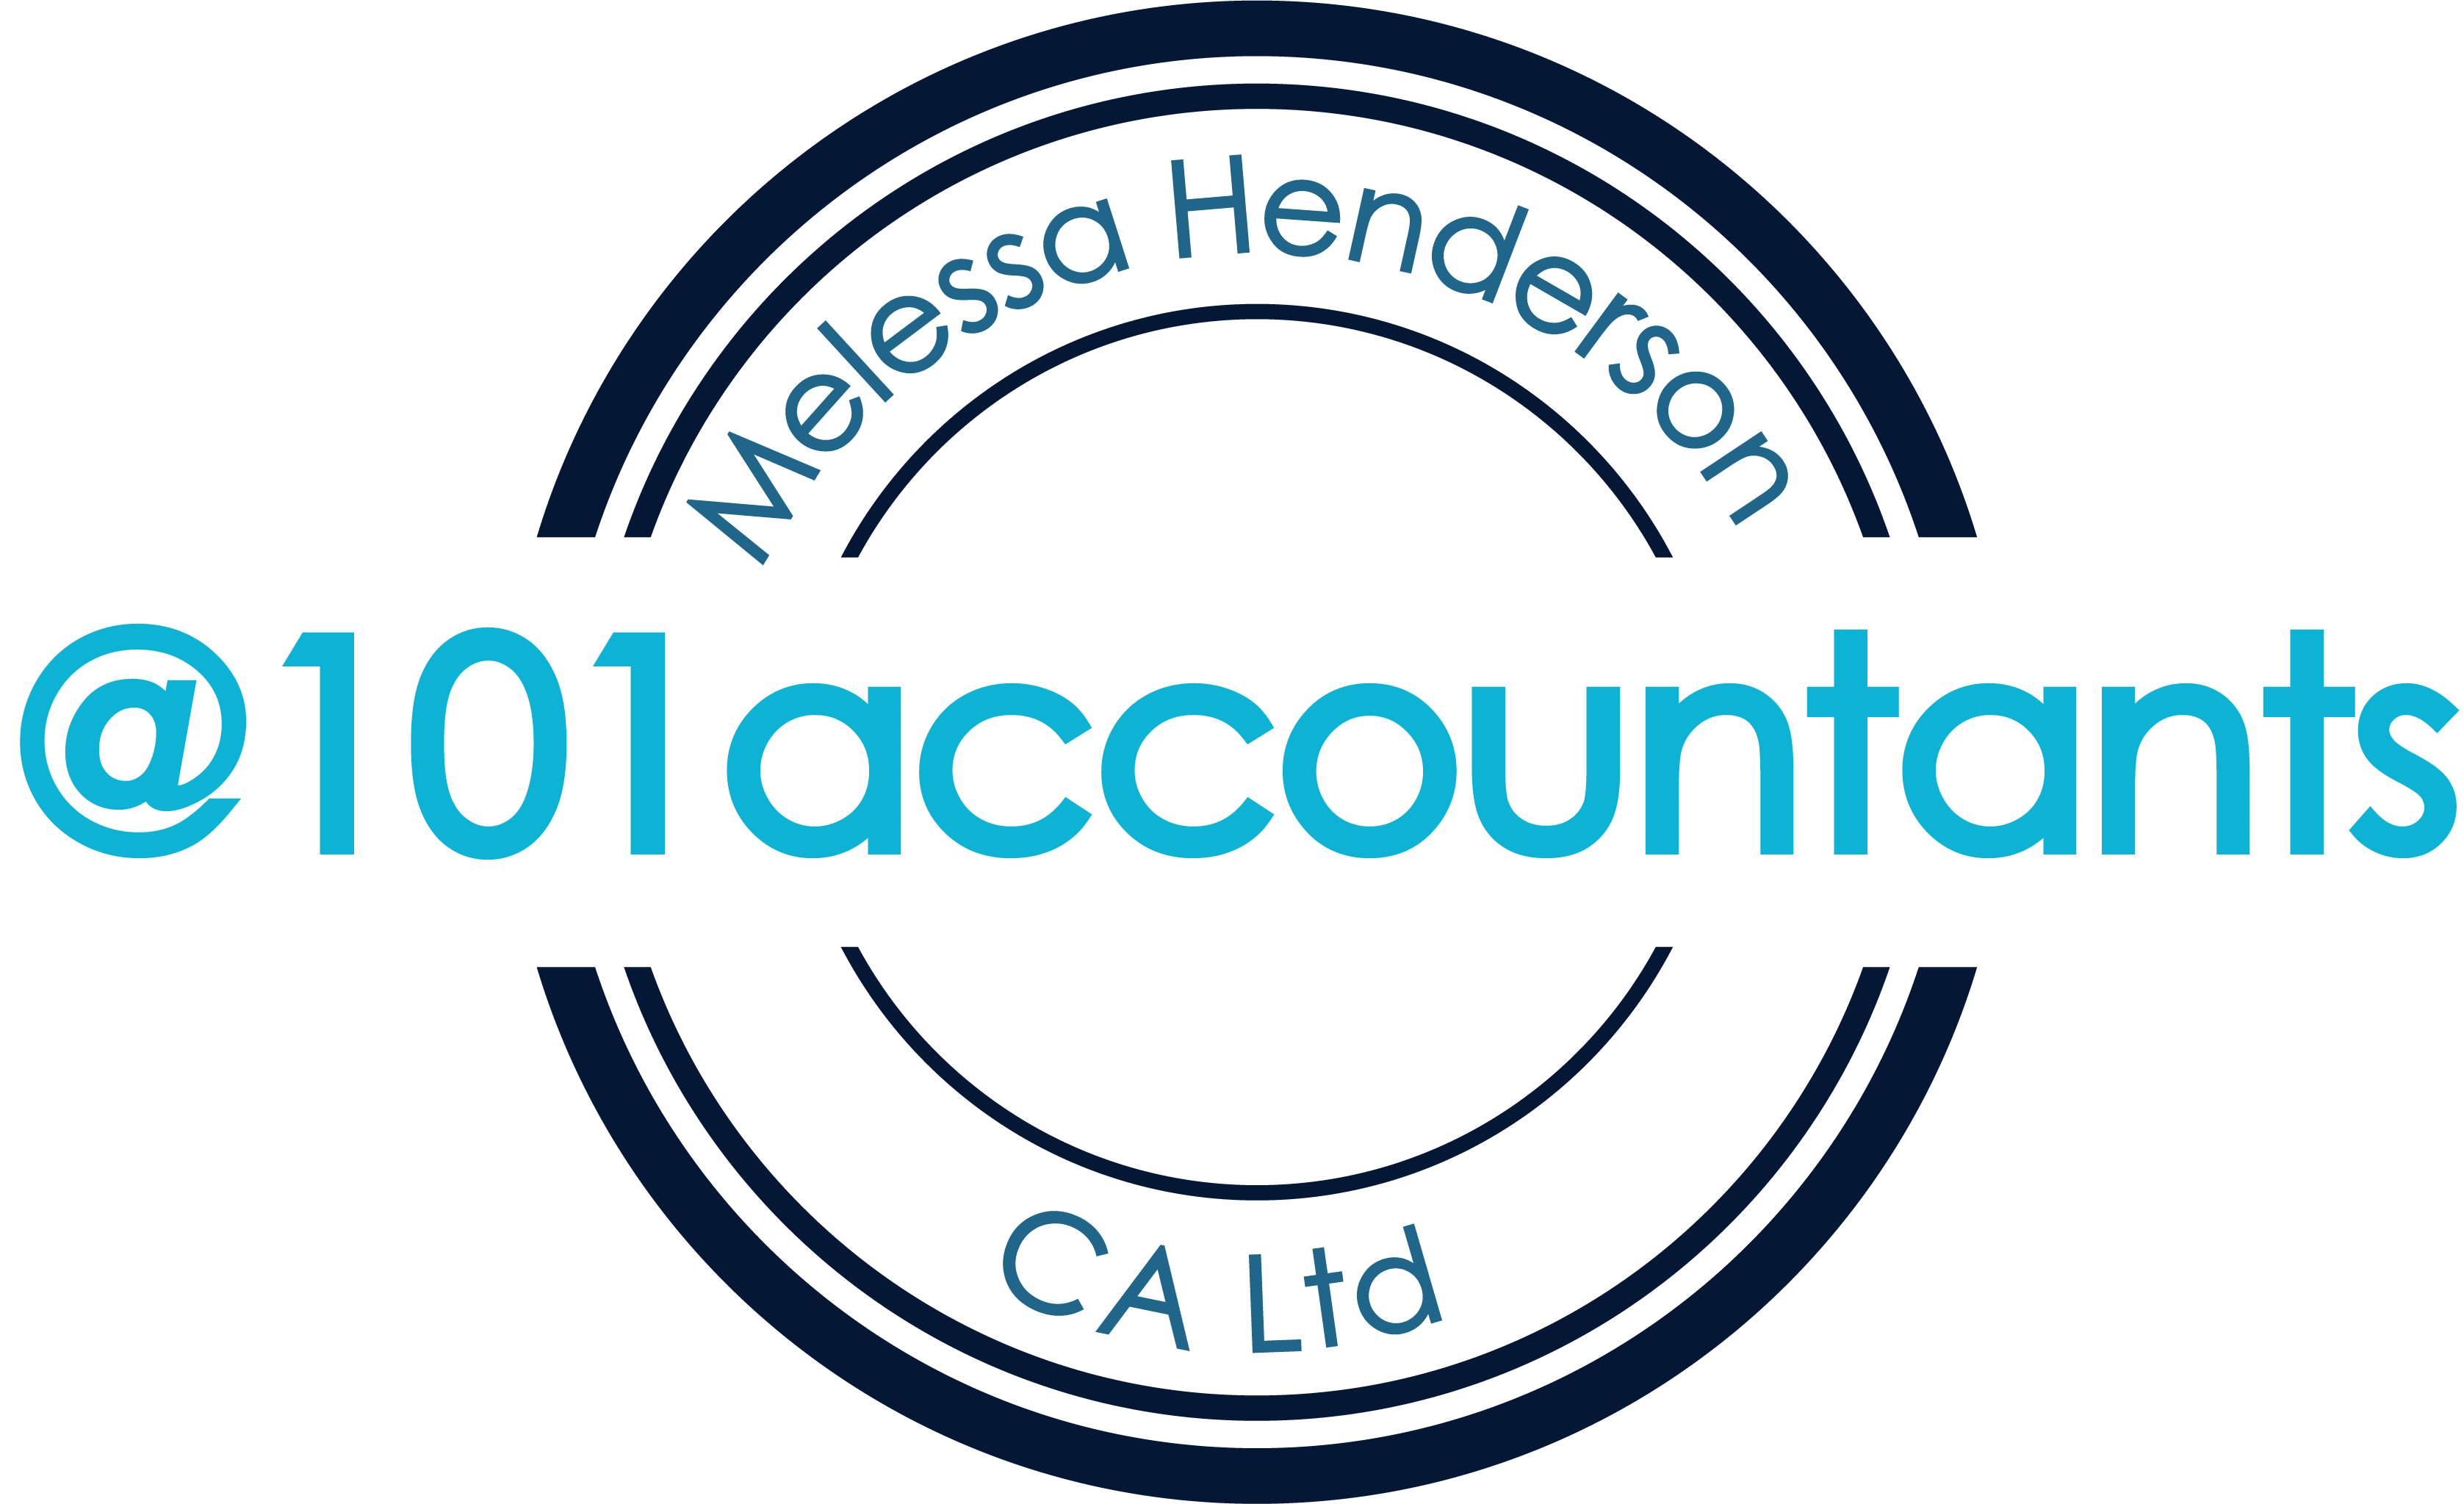 101 Accountants